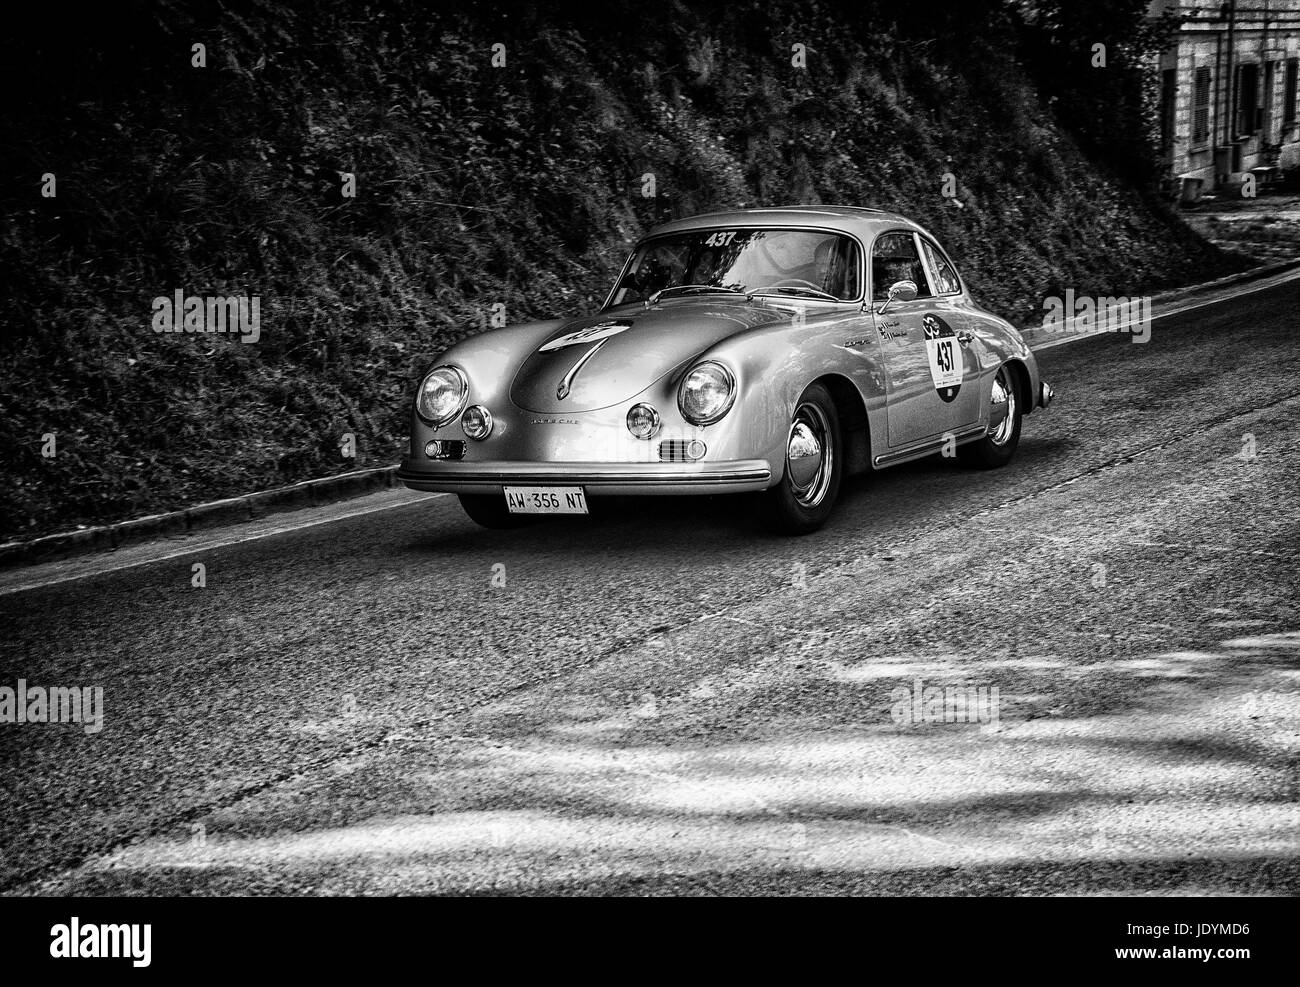 PORSCHE 356 A 1500 GS CARRERA 1956 on an old racing car in rally ...